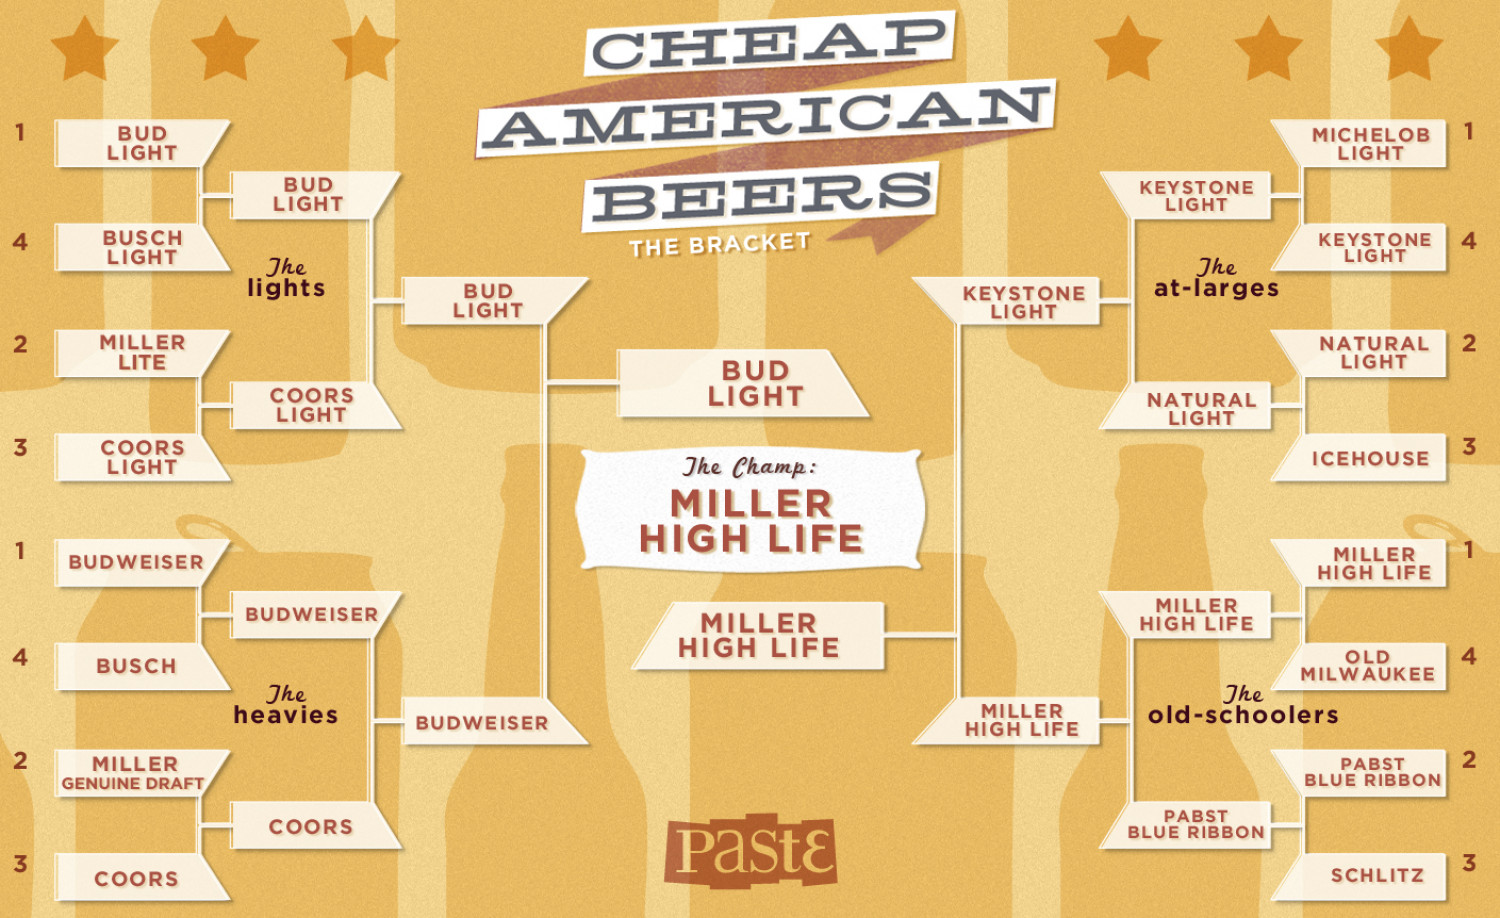 Cheap American Beers: The Bracket Infographic